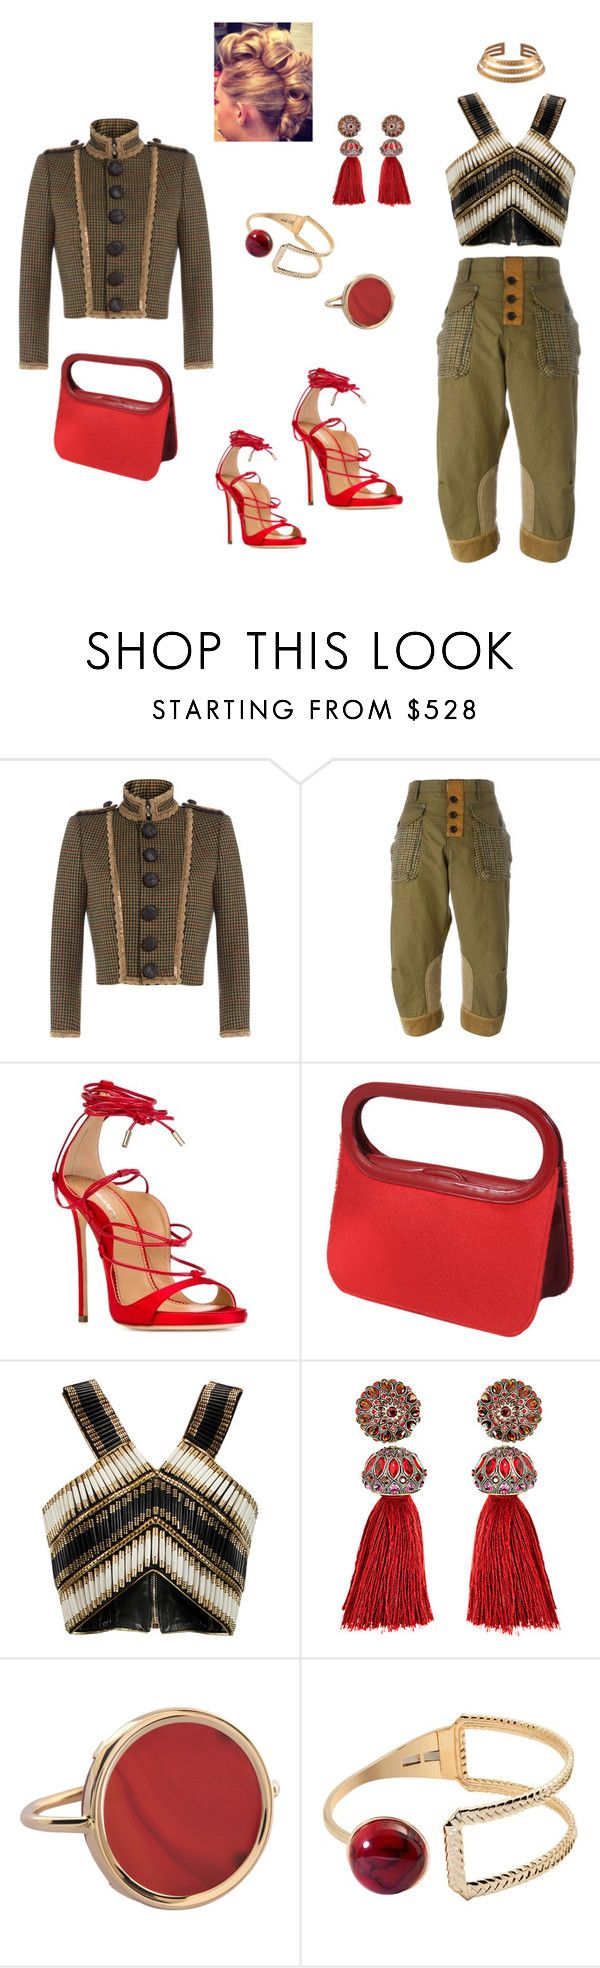 """#D20 #fw15"" by missactive-xtraordinary ❤ liked on Polyvore featuring Dsquared2, Renaud Pellegrino, Balmain, Lanvin and Ginette NY"